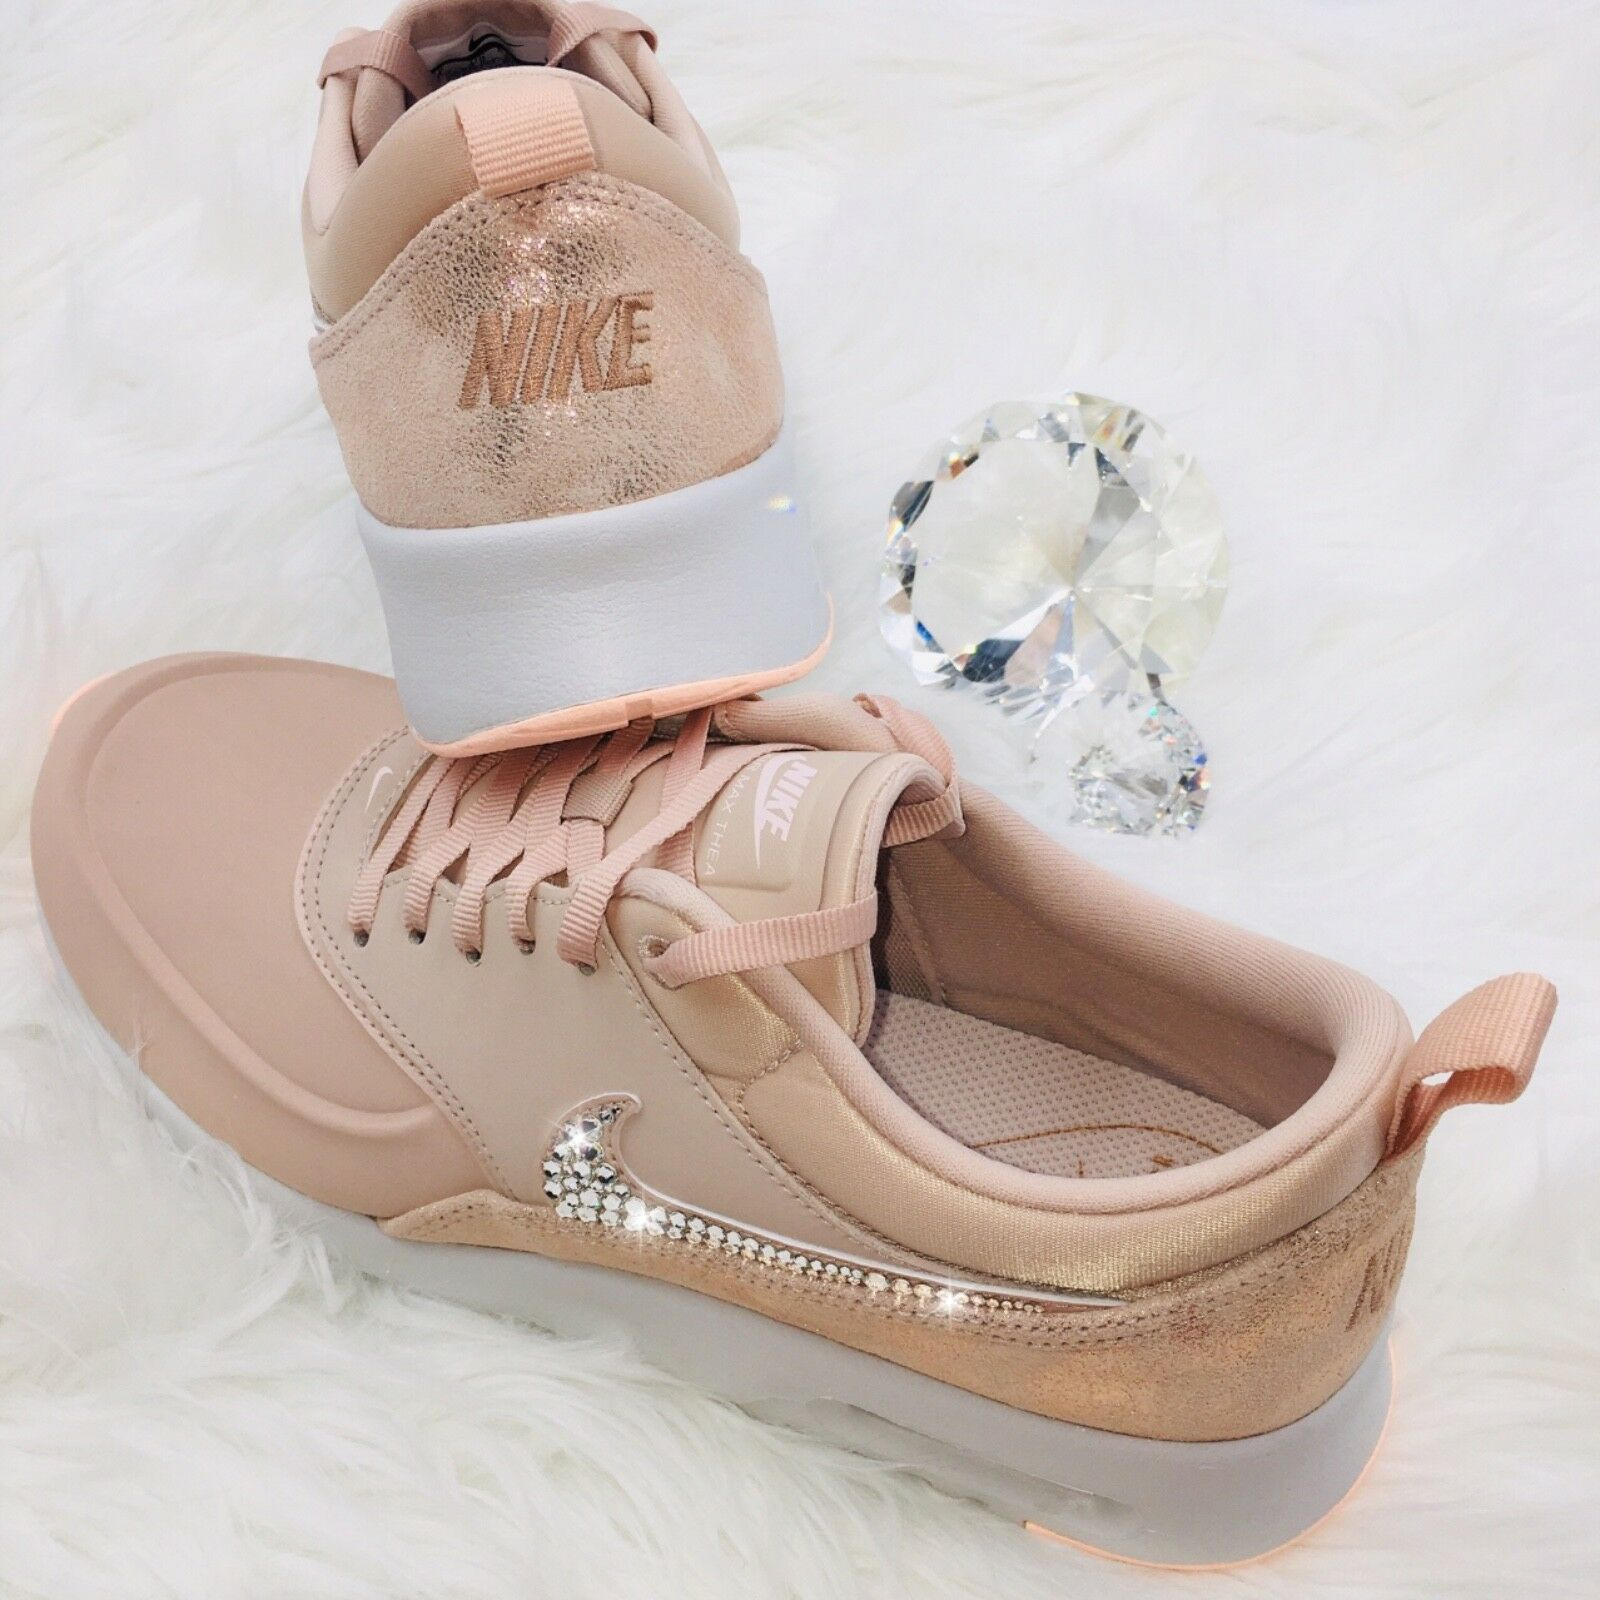 Bling Nike Air Max Thea Premium chaussures w Swarovski Crystal Swoosh LUXE Rose or